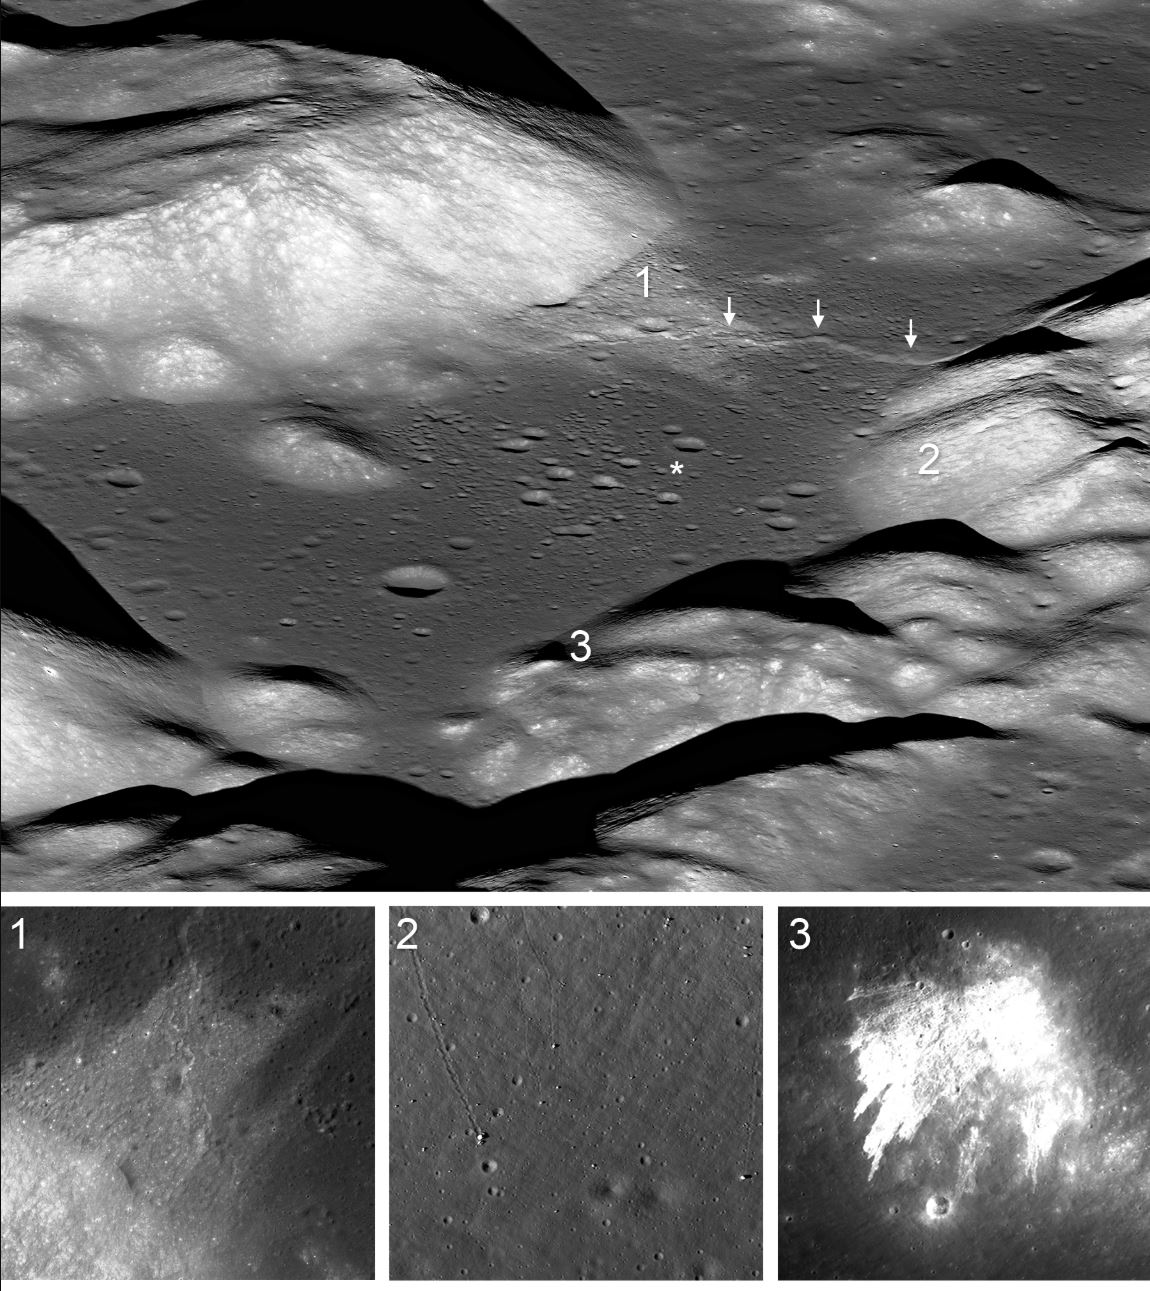 The Taurus-Littrow valley is the location of the Apollo 17 landing site (asterisk). Cutting across the valley, just above the landing site, is the Lee-Lincoln fault scarp. Movement on the fault was the likely source of numerous moonquakes that triggered events in the valley. 1) Large landslides on of slopes of South Massif draped relatively bright rocks and dust (regolith) on and over the Lee-Lincoln scarp. 2) Boulders rolled down the slopes of North Massif leaving tracks or narrow troughs in the regolith on the slopes of North Massif. 3) Landslides on southeastern slopes of the Sculptured Hills. - Image Credit: NASA/GSFC/Arizona State University/Smithsonian - (click to enlarge)